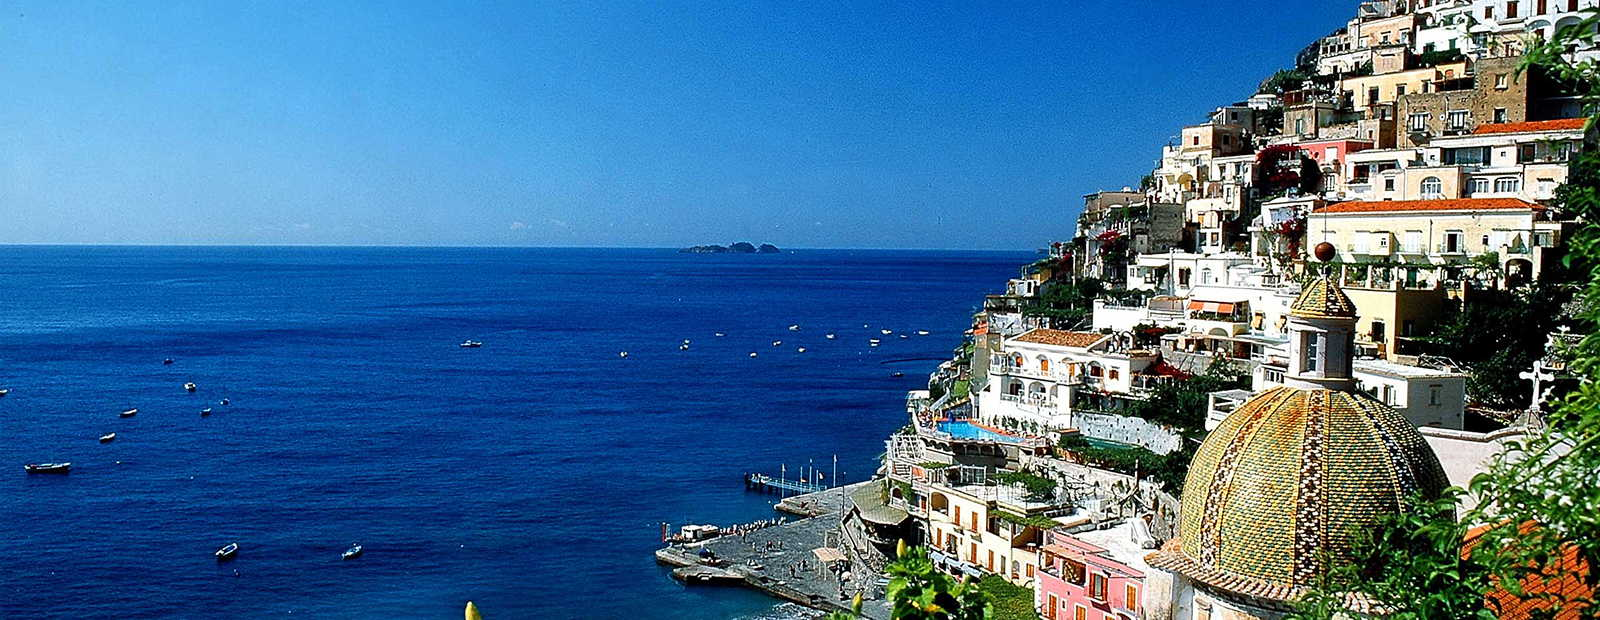 Luxurious holiday homes at the Amalfi Coast